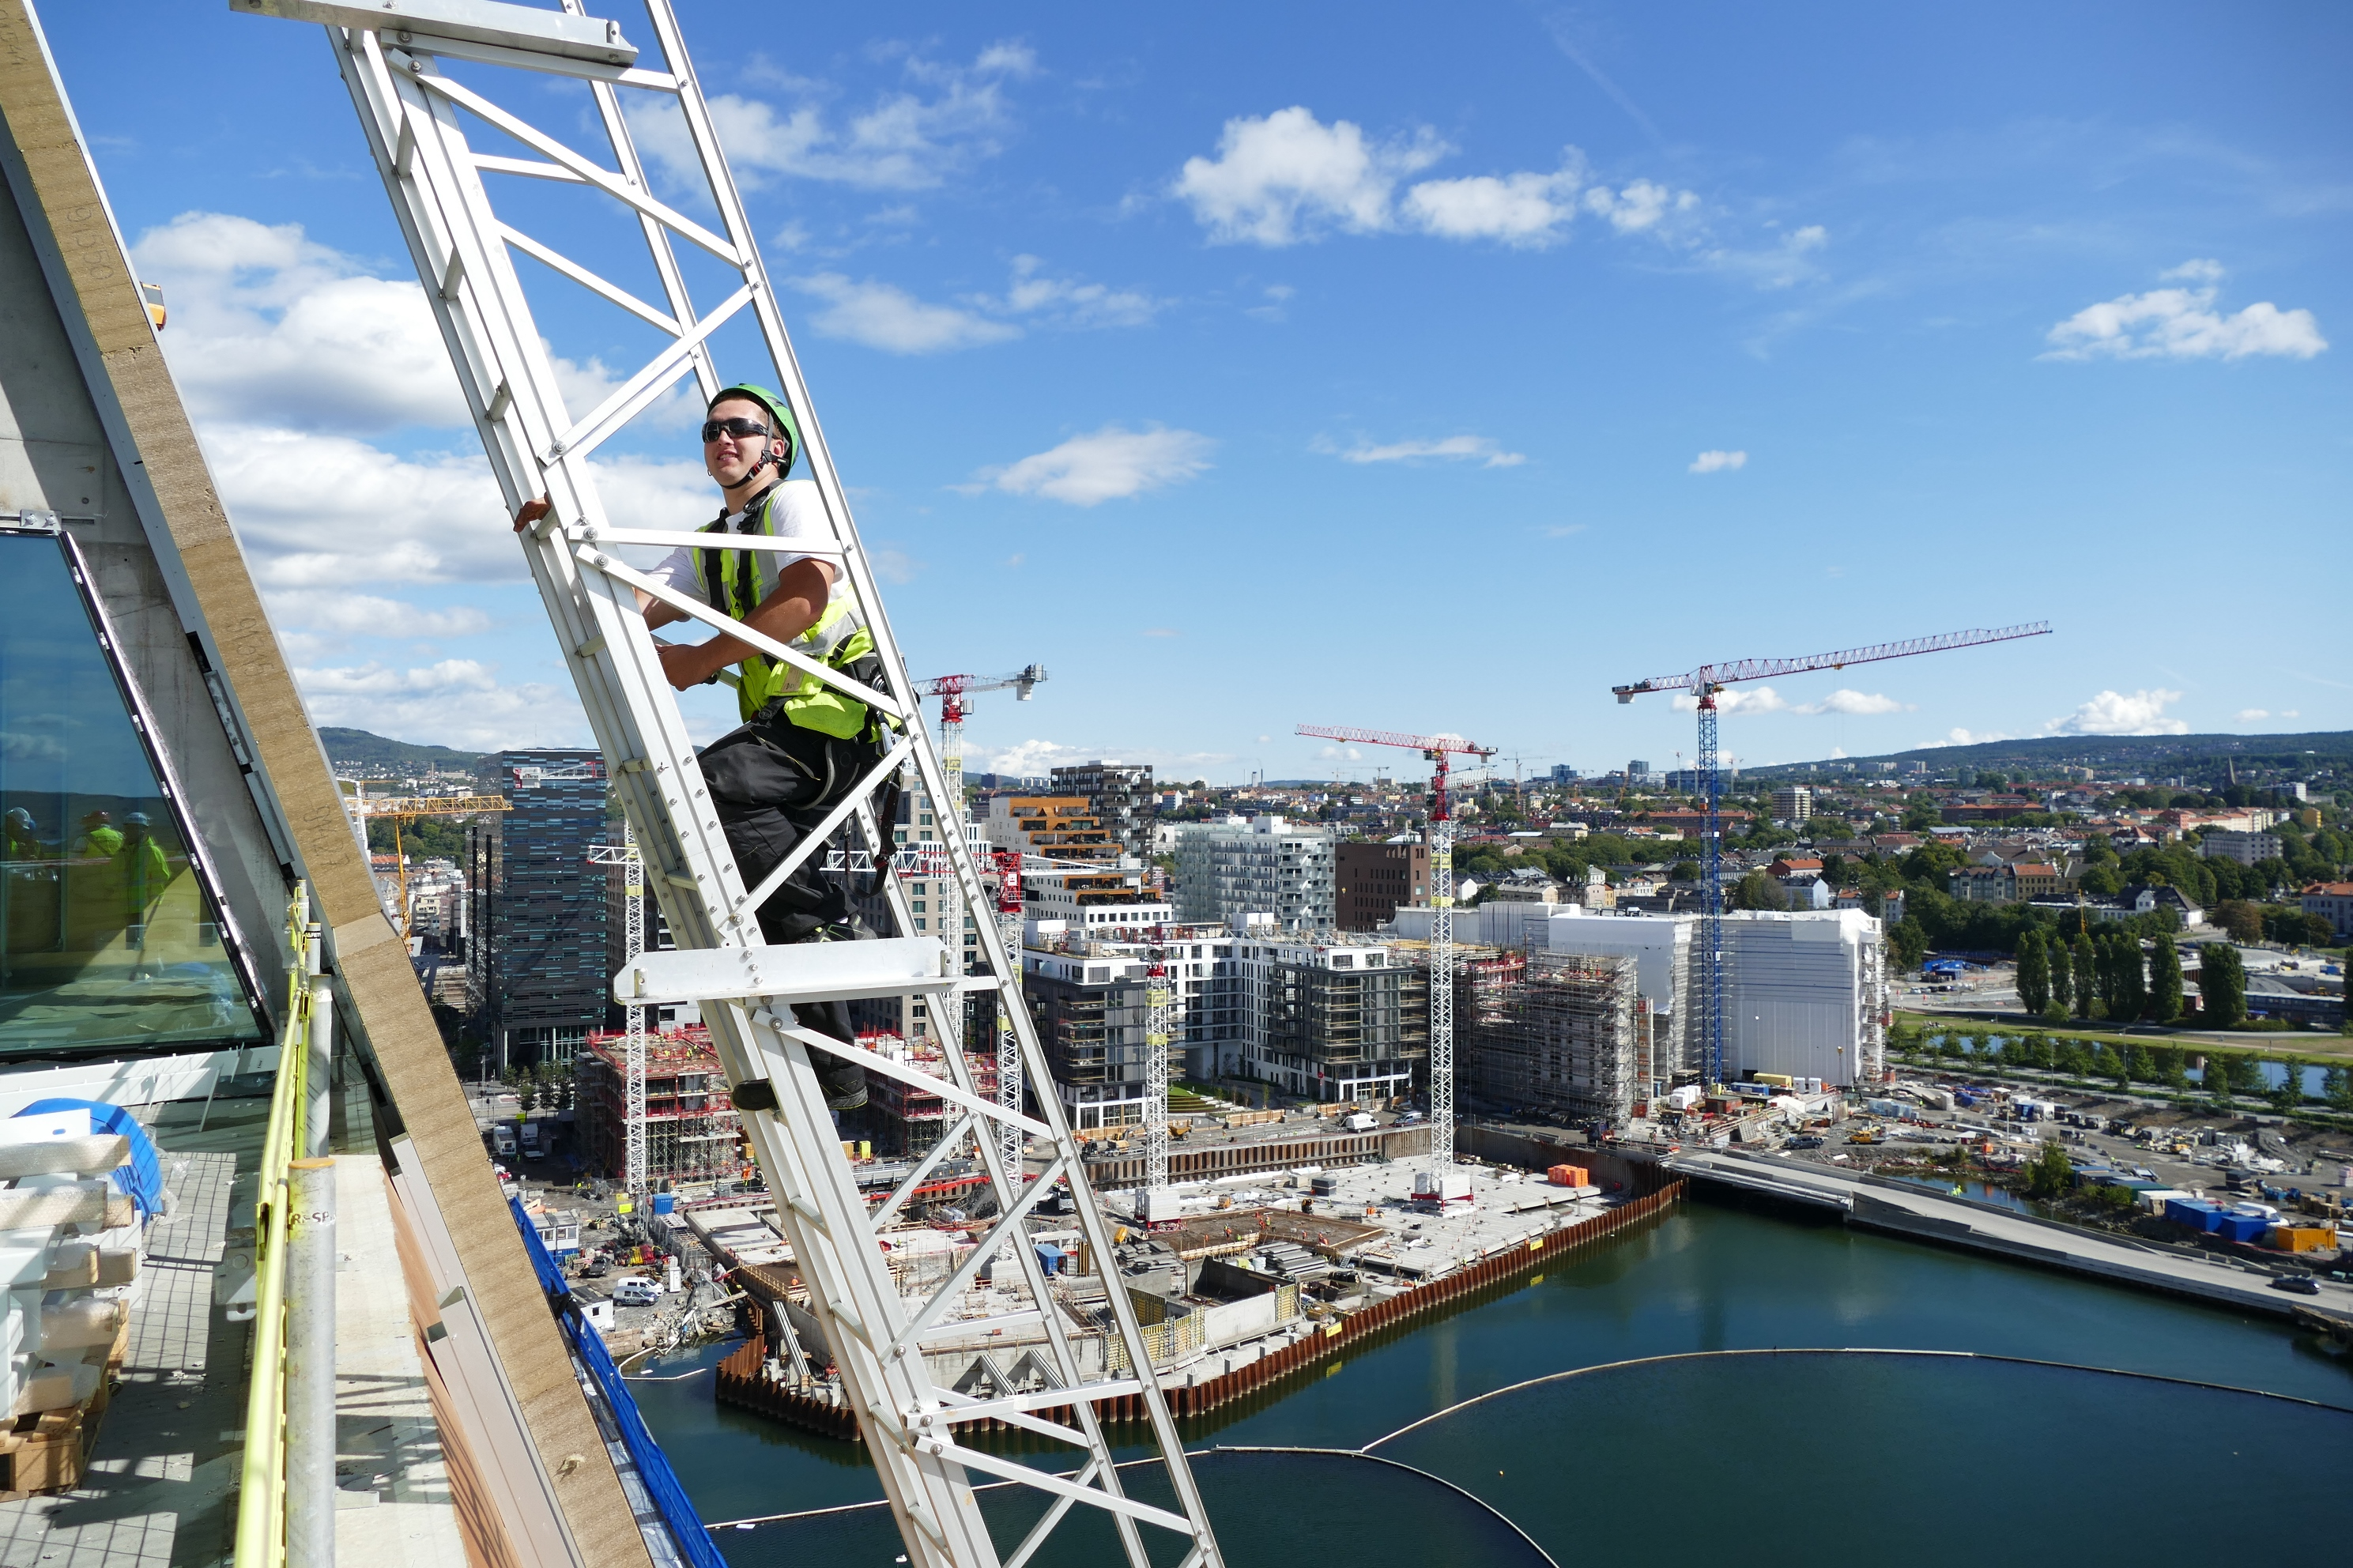 The Oslo model brings transparency to the construction sector